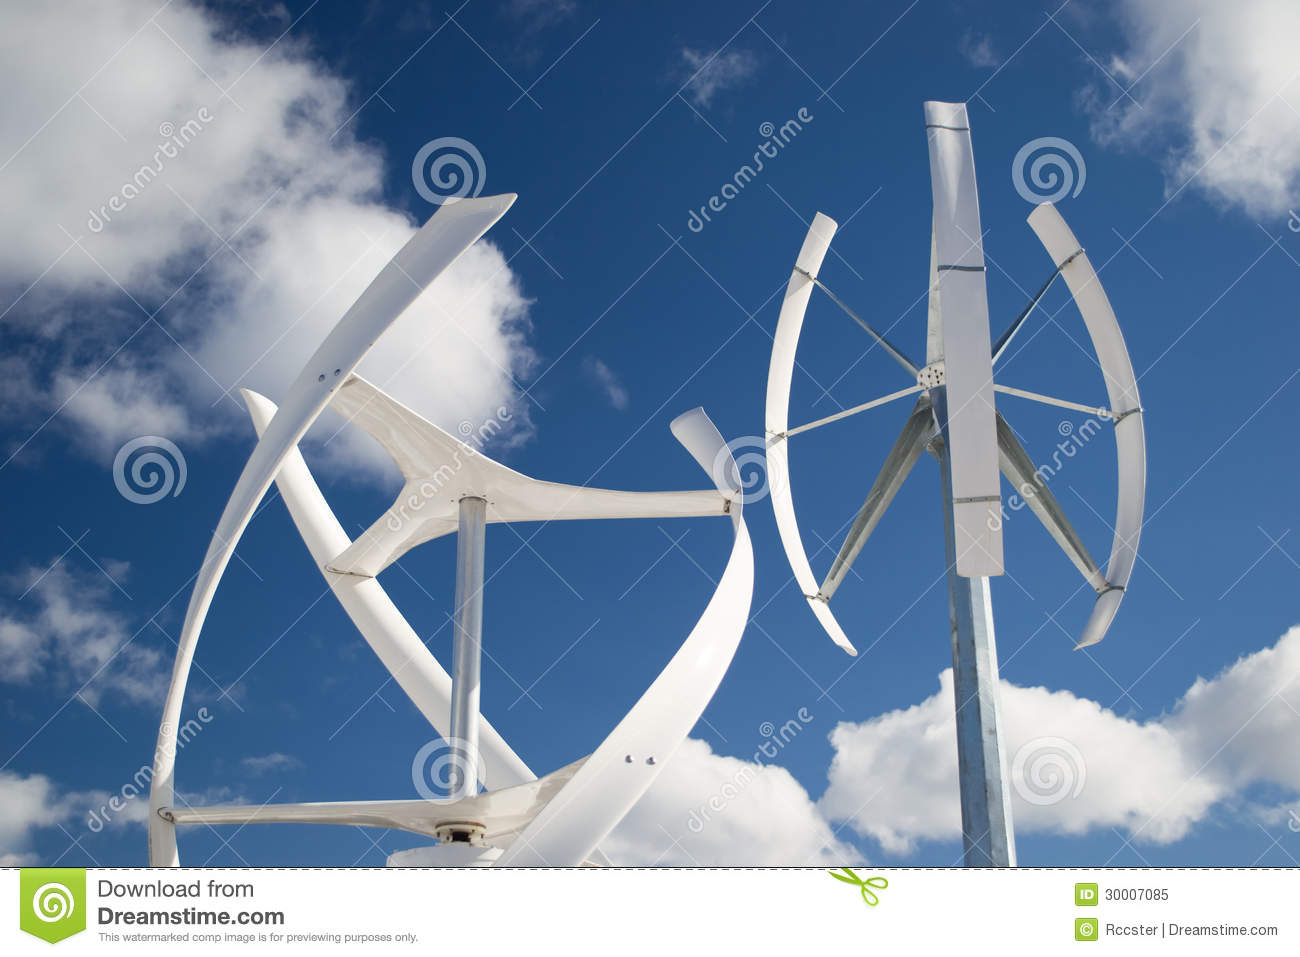 ... types of windmill turbines generating wind power. A renewable energy